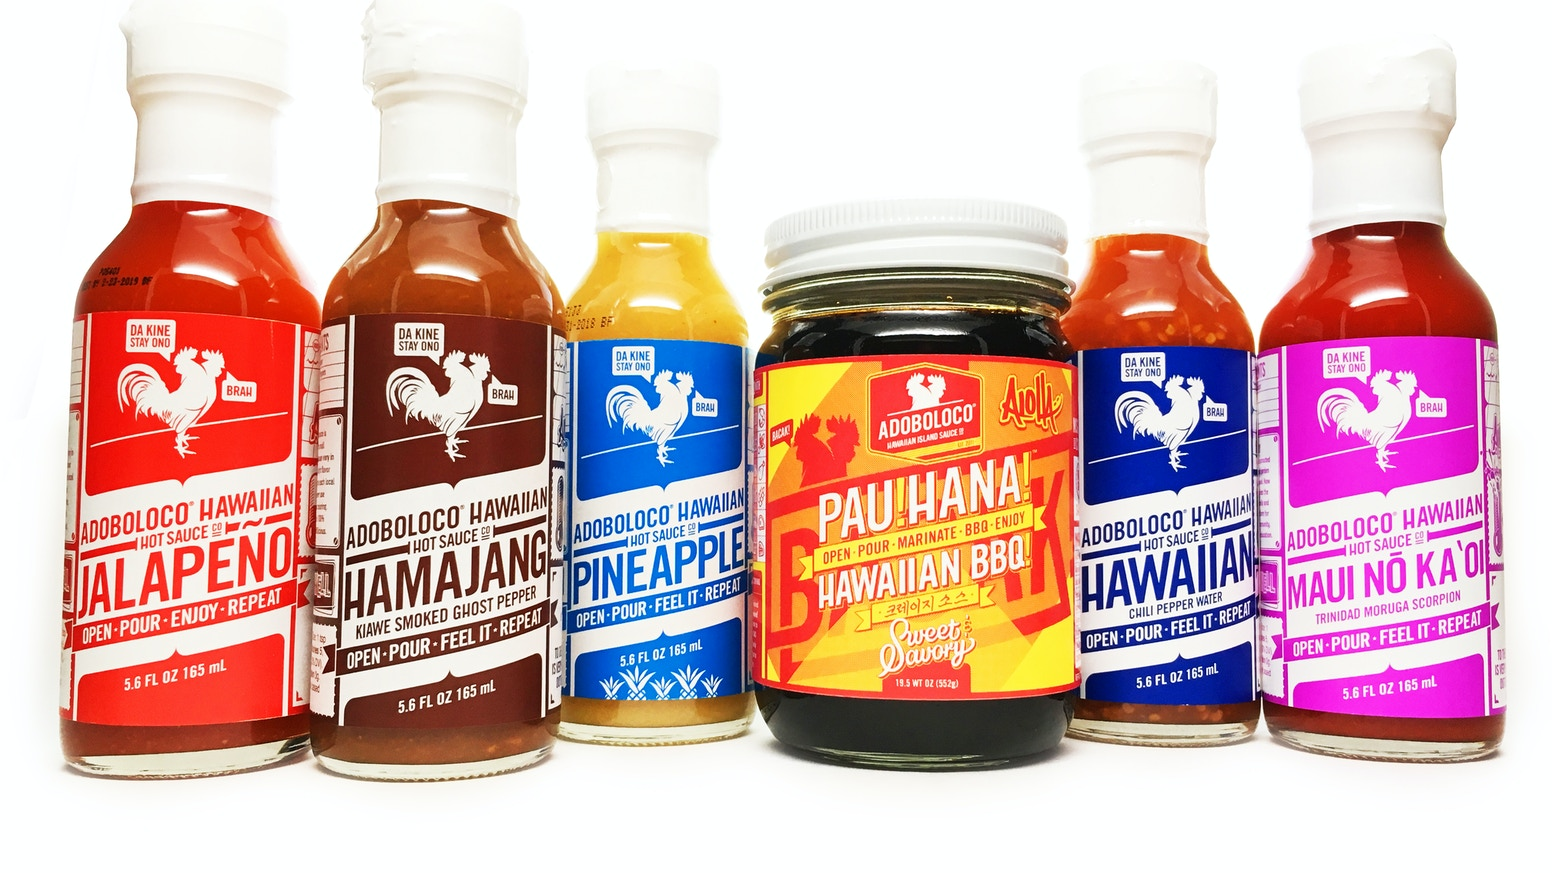 100% Natural Hawaiian Fusion BBQ Sauce. It's so 'ONO (delicious) your friends and family will ask for it again and again.